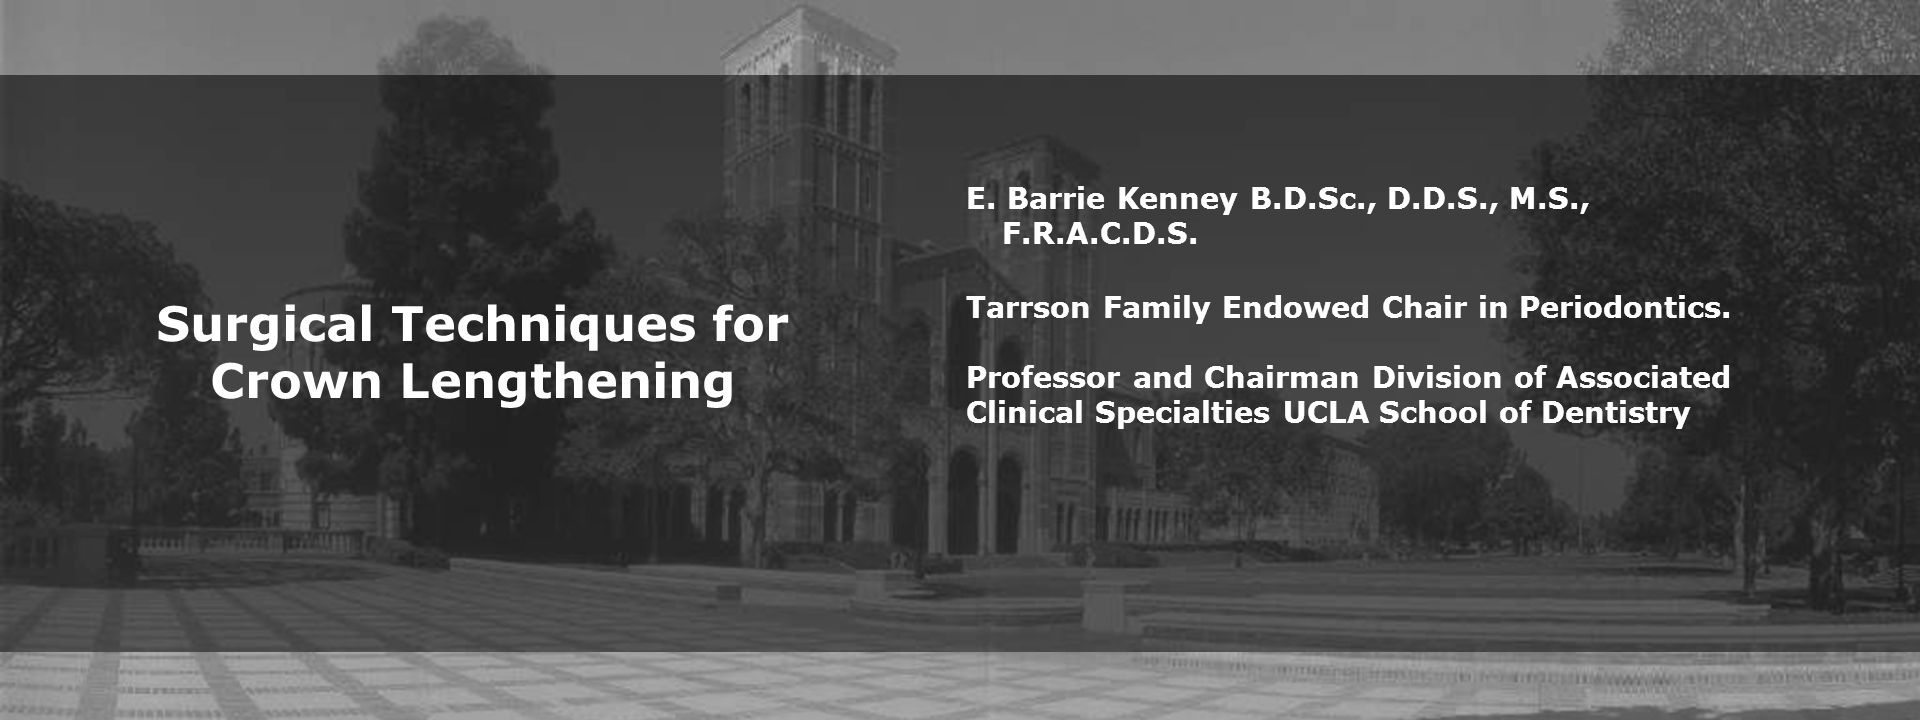 E. Barrie Kenney B.D.Sc., D.D.S., M.S., F.R.A.C.D.S. Tarrson Family Endowed Chair in Periodontics. Professor and Chairman Division of Associated Clini